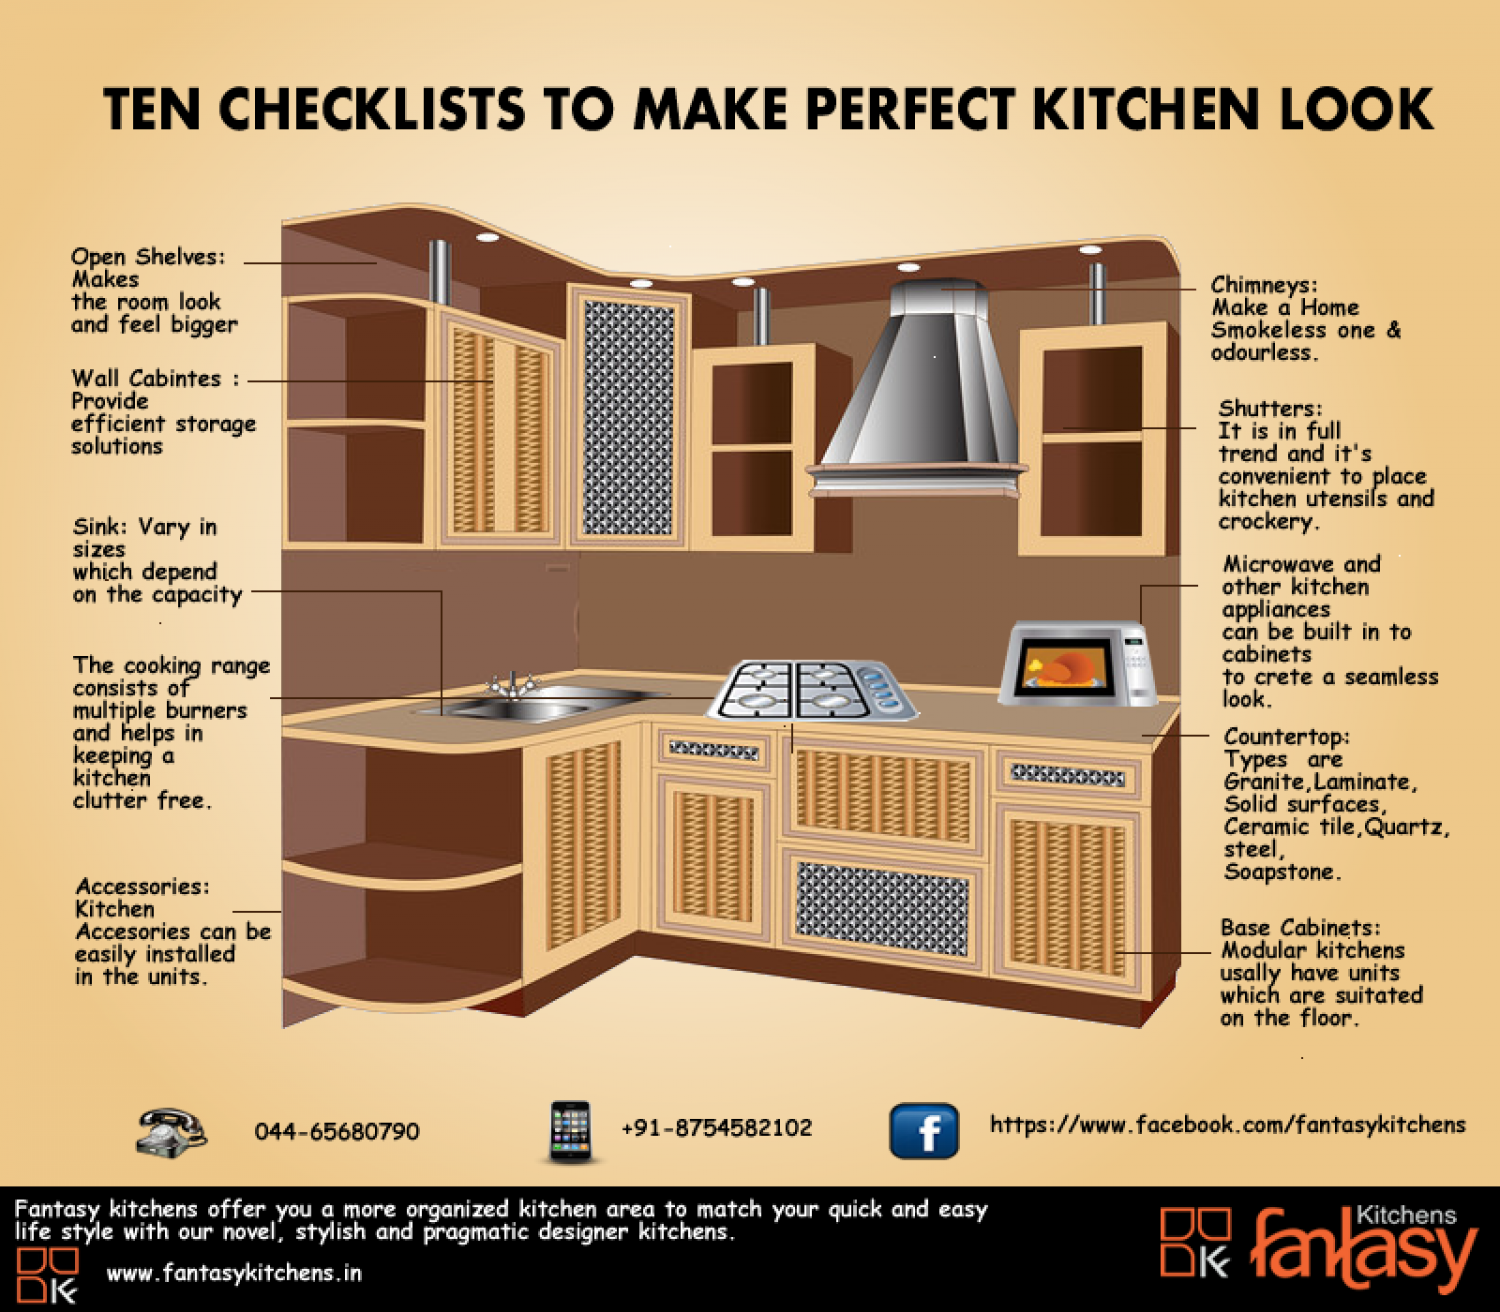 Ten Checklists to Make a Perfect Kitchen Look Infographic